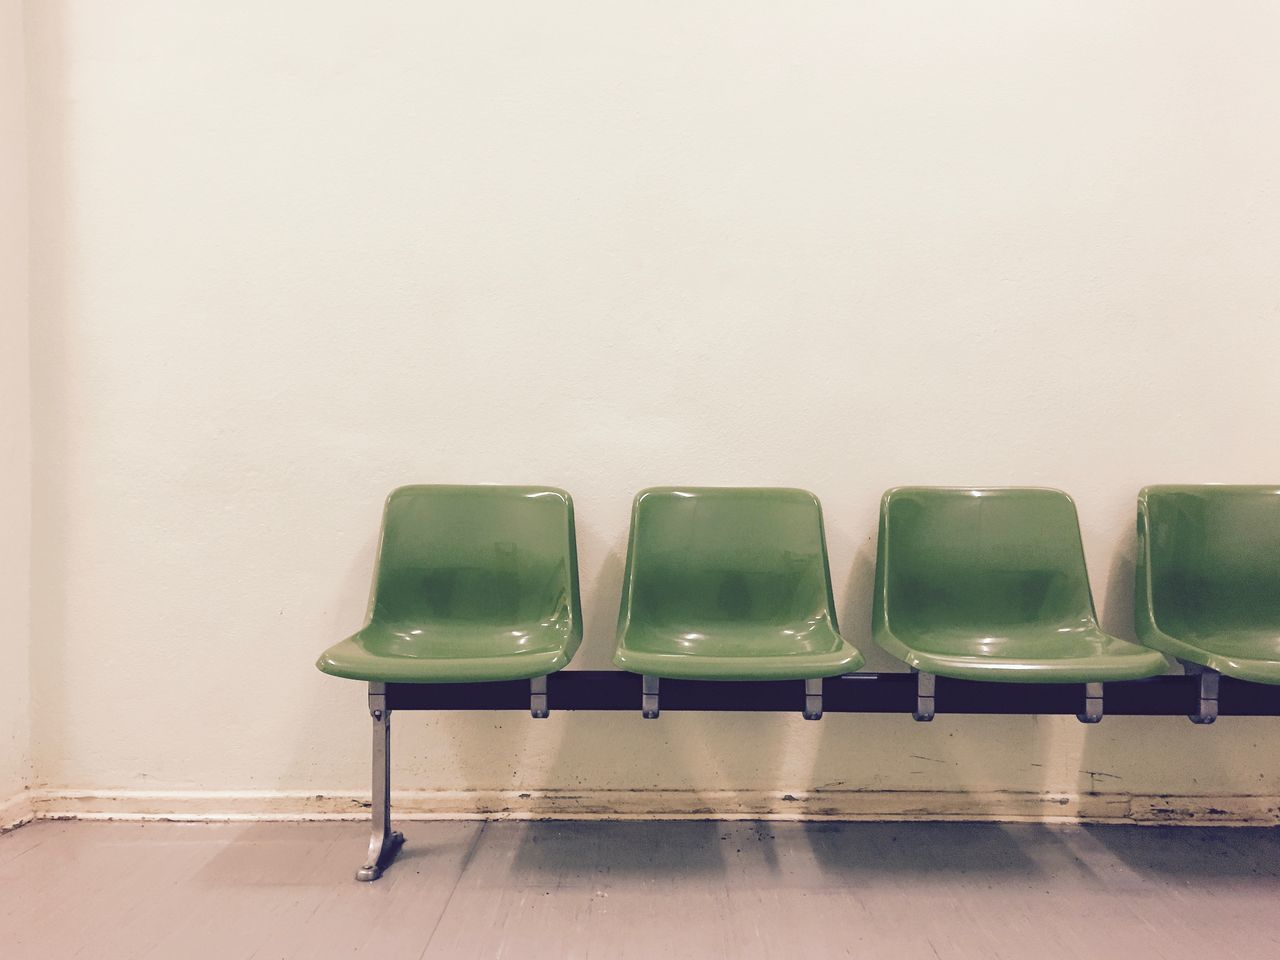 Copy Space Empty Places Empty Seats Green Green Green Green!  Have A Seat In A Row Indoors  No People Rows Of Things Seats Simplicity Waiting In Line Waiting Room